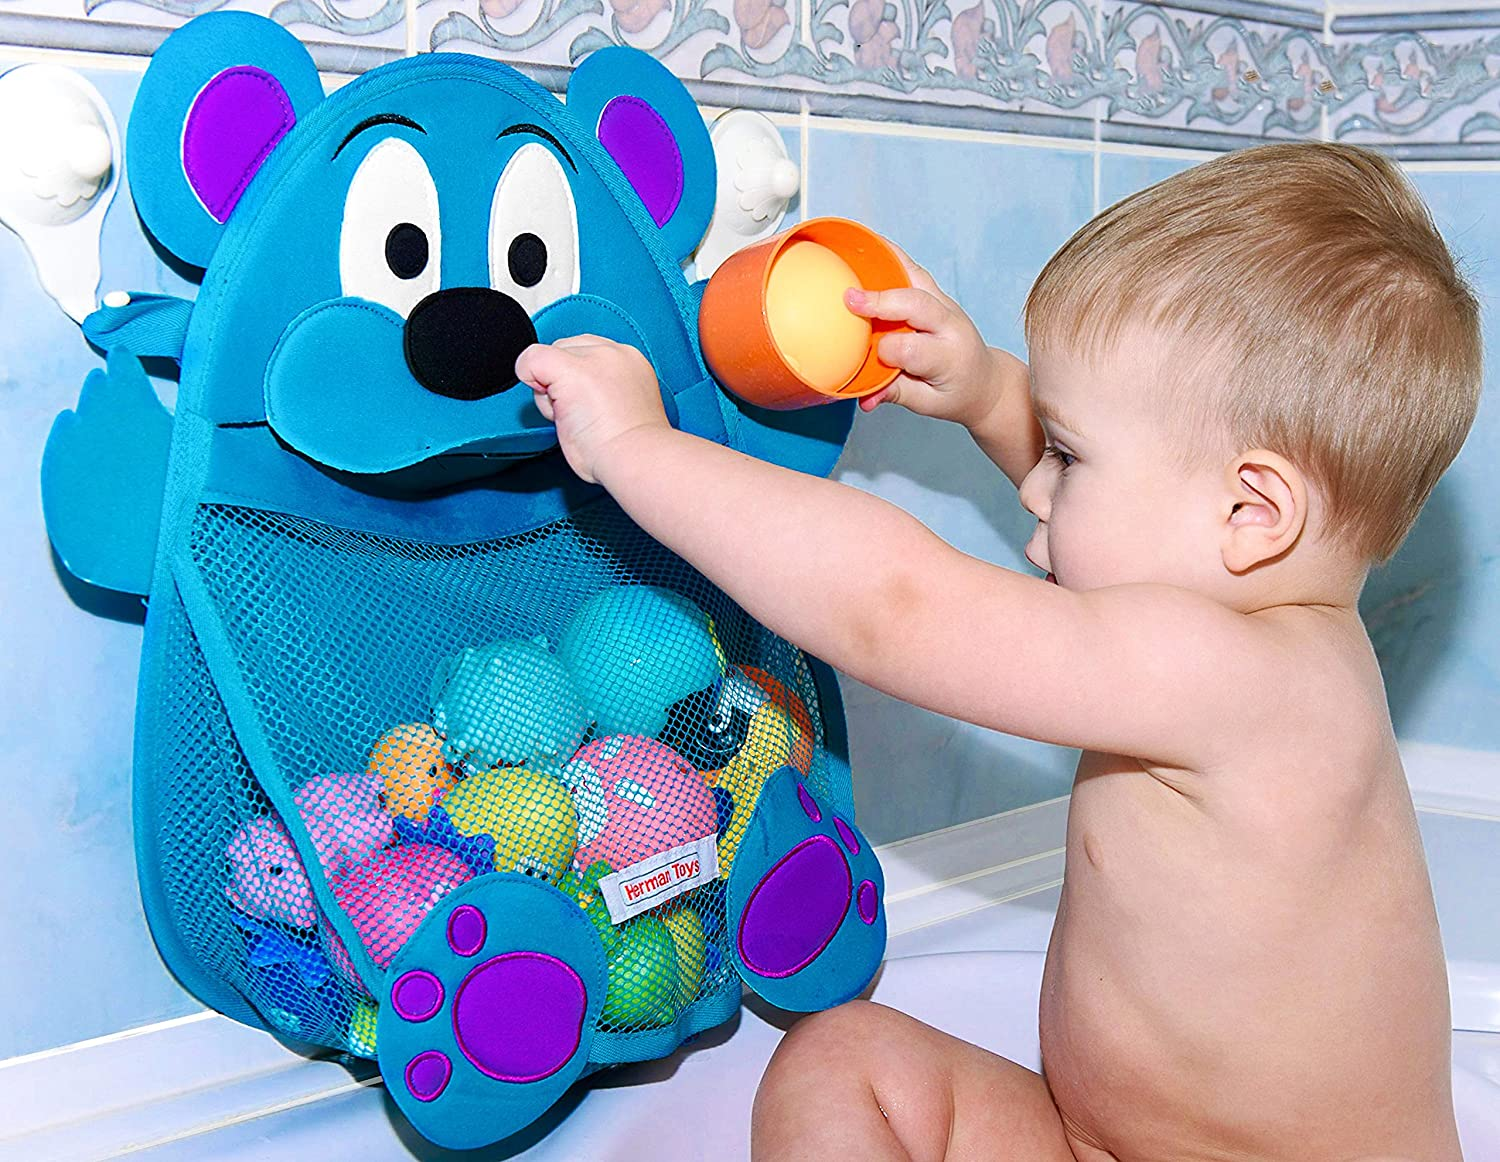 Herman Bear Baby Bath Toy Organizer - Toddler Bathtub Toy Storage Holder - Bathroom Toy Net Bag + heavy duty suction cups, Blue